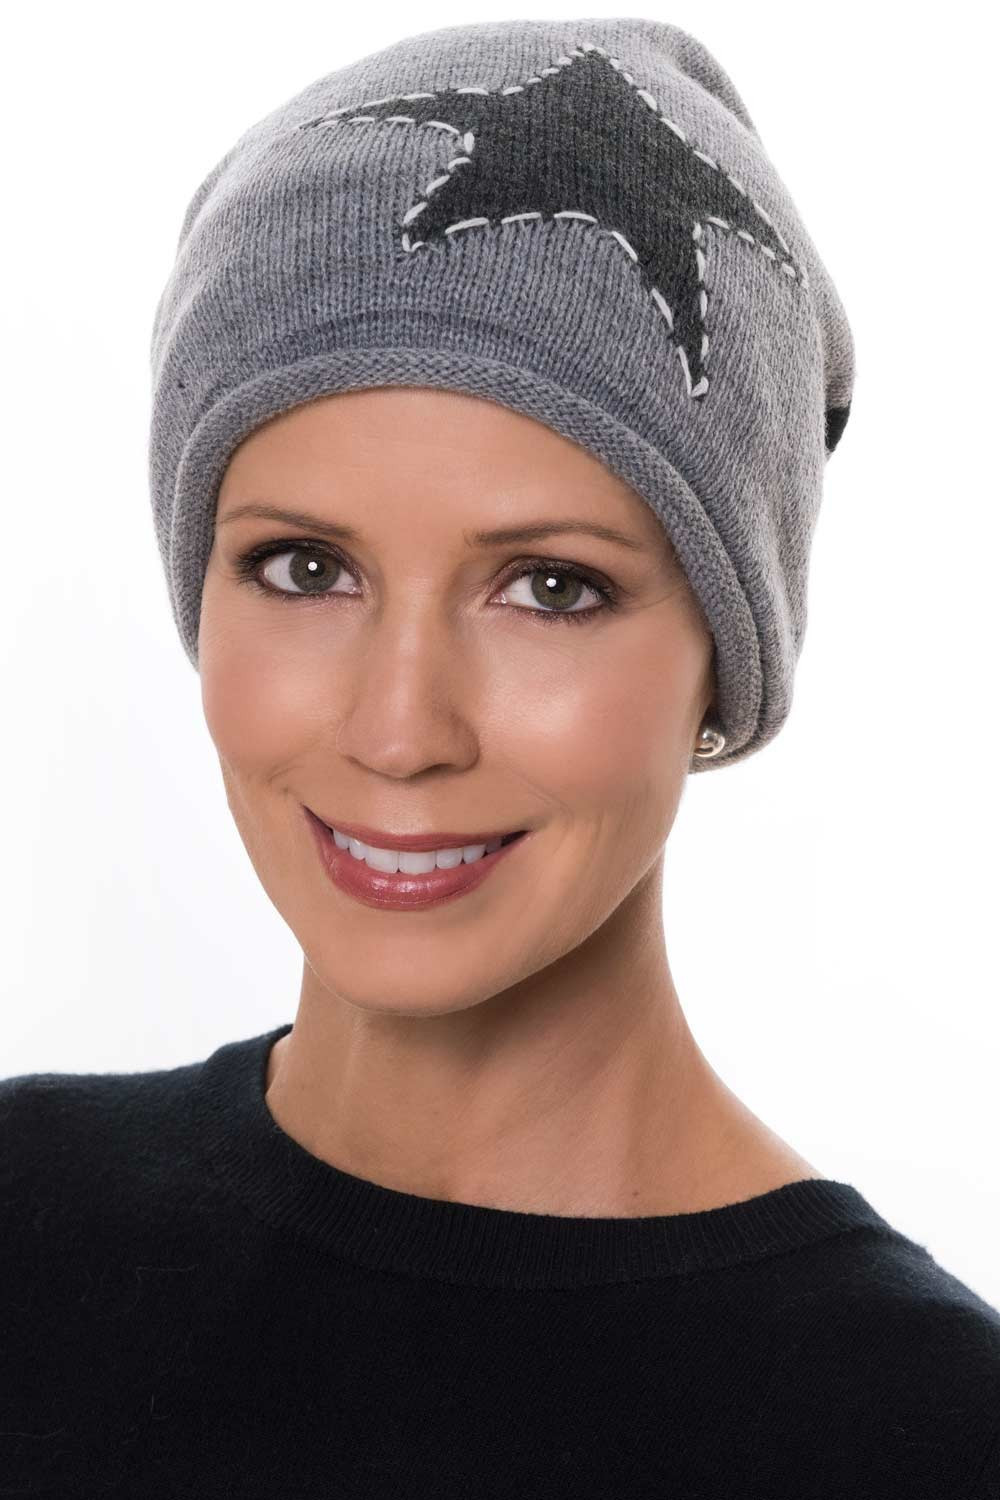 Womens Knit Hats New Star Knit Slouchy Beanie Cap Of Innovative 50 Images Womens Knit Hats